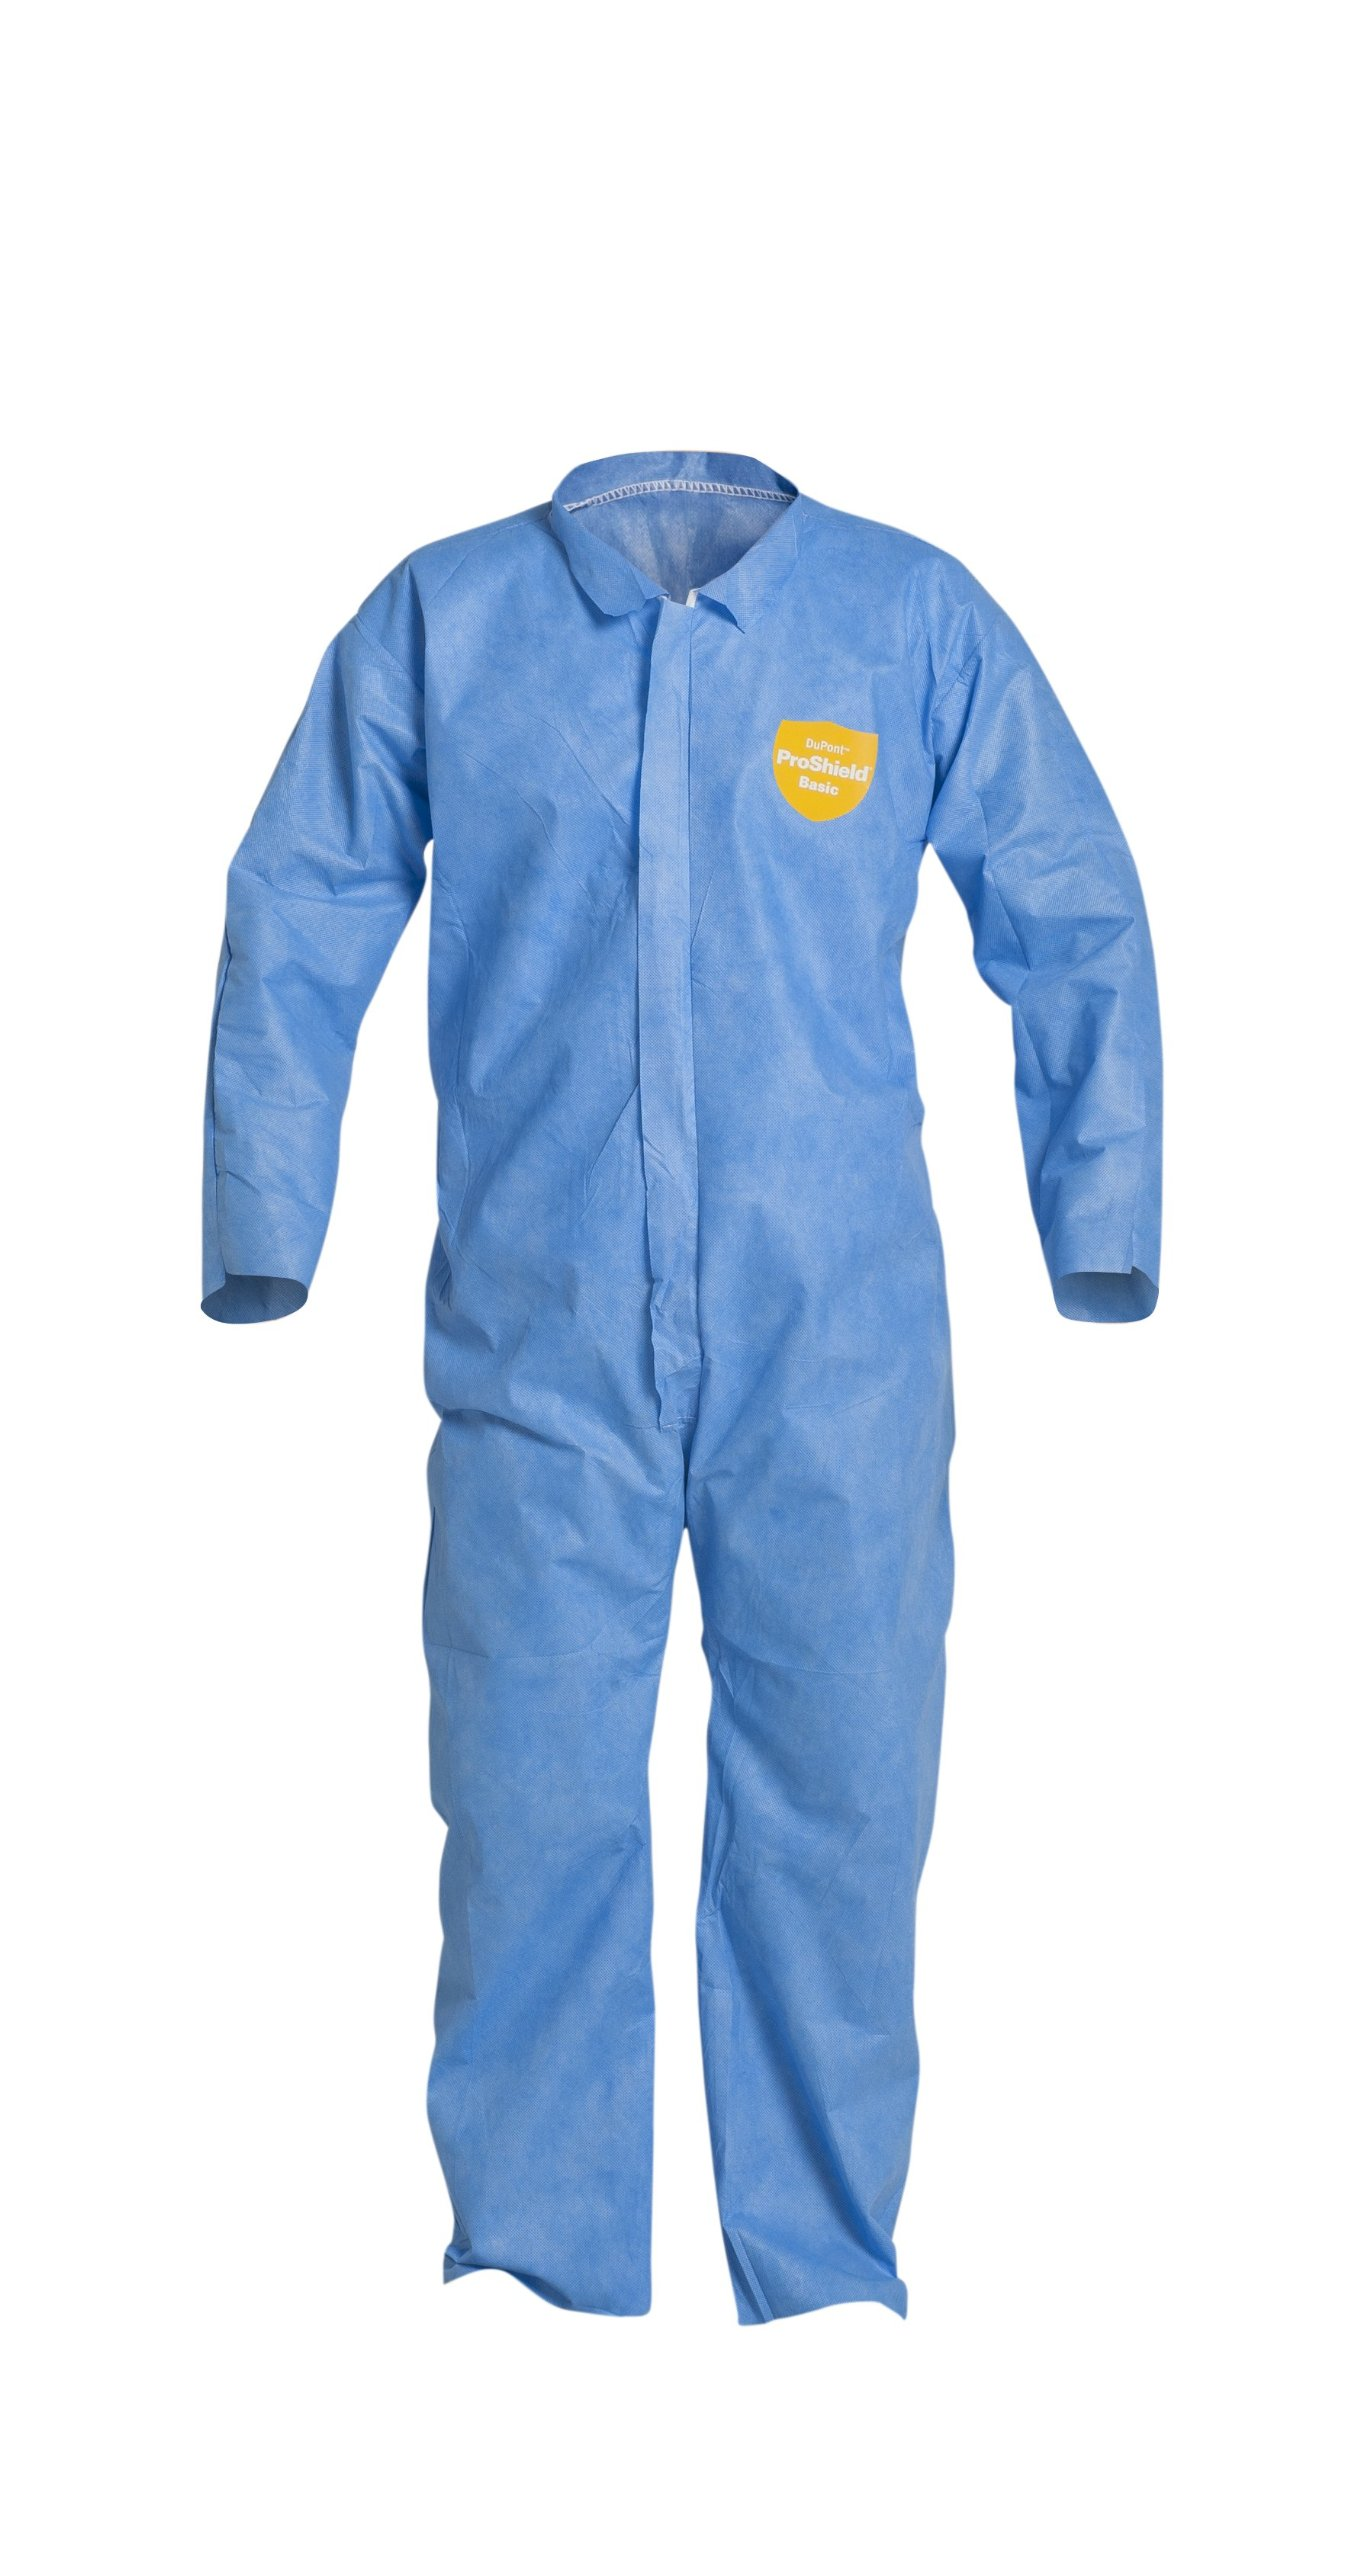 DuPont ProShield 10 PB120S Disposable Protective Coverall with Serged Seams, Open Cuff and Ankles, Blue, 2X-Large (Pack of 25)